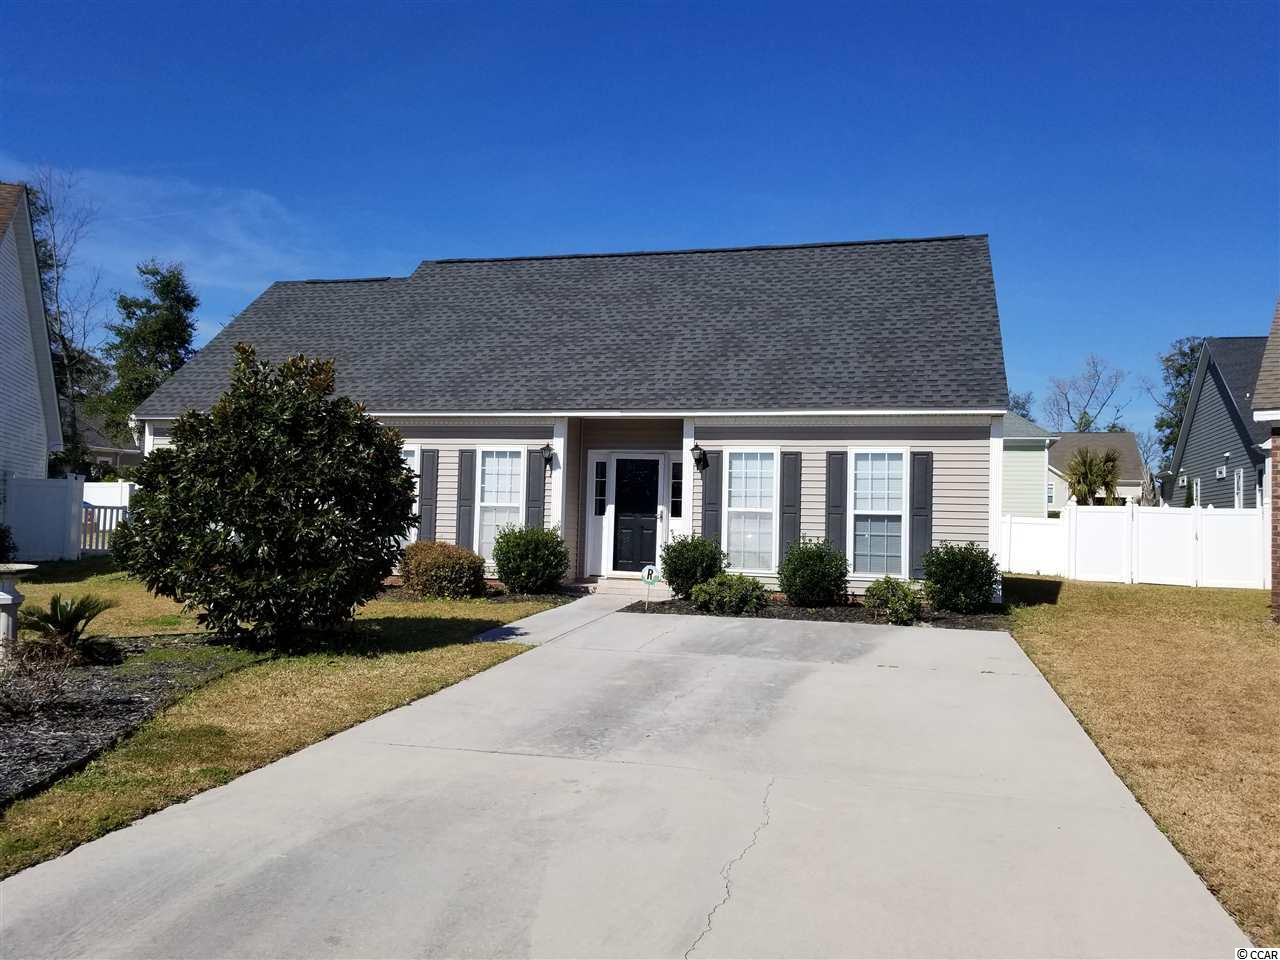 Location, Location, Location.  Great one-story ranch home in Washington's Walk subdivision, just a short golf cart ride to the beach, restaurants, grocery store and hardware store, in Cherry Grove section of North Myrtle Beach.  Three bedrooms, Two bathrooms.  The master has plenty of space and a large walk-in closet.  Master bath has shower and tub.  You will enjoy the open floor plan, with living, dining and kitchen in same spacious room.   New HVAC in 2018. Schedule your showing today, and be ready for spring and summer at the beach!